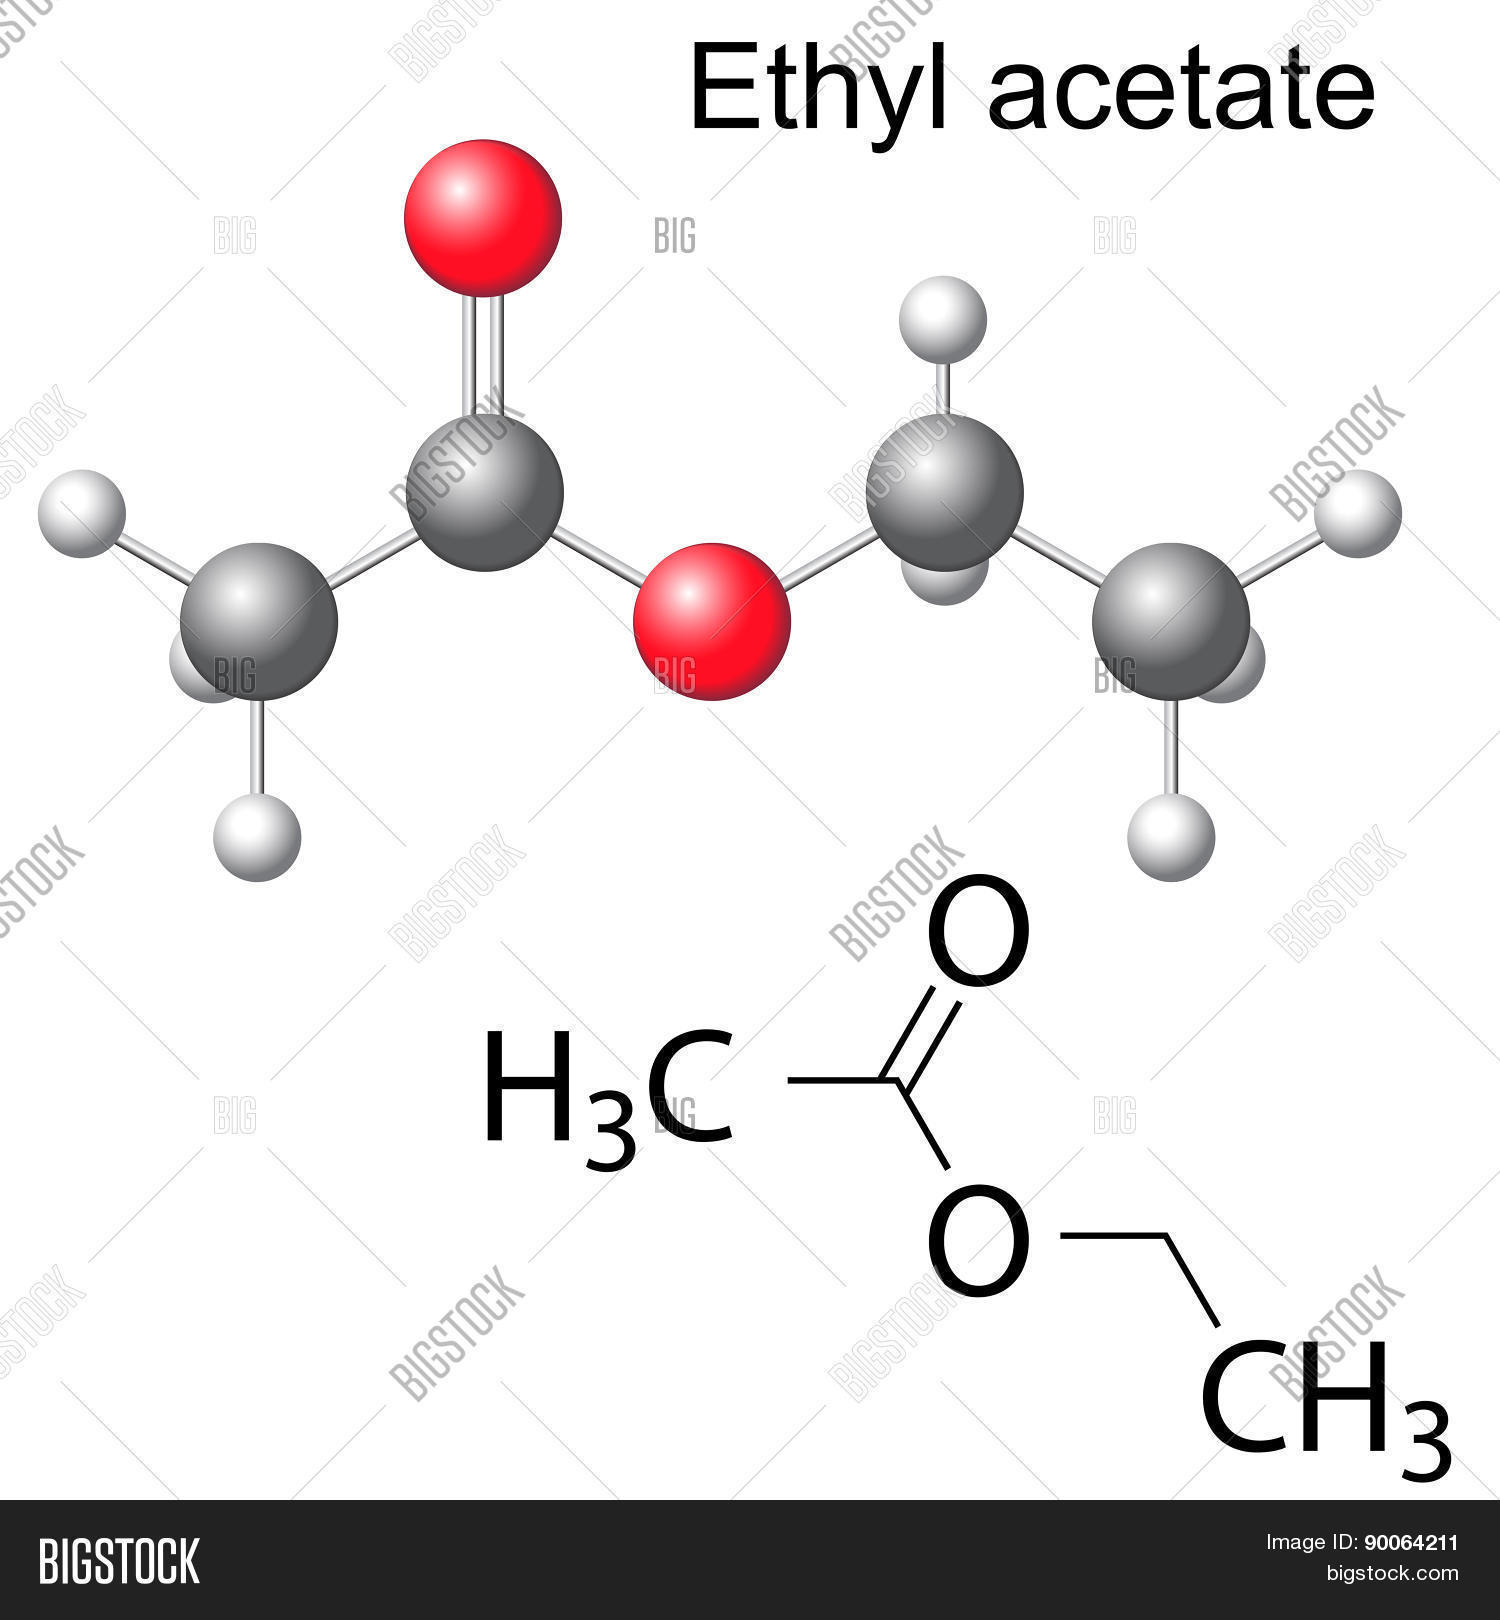 hight resolution of structural chemical formula and model of ethyl acetate